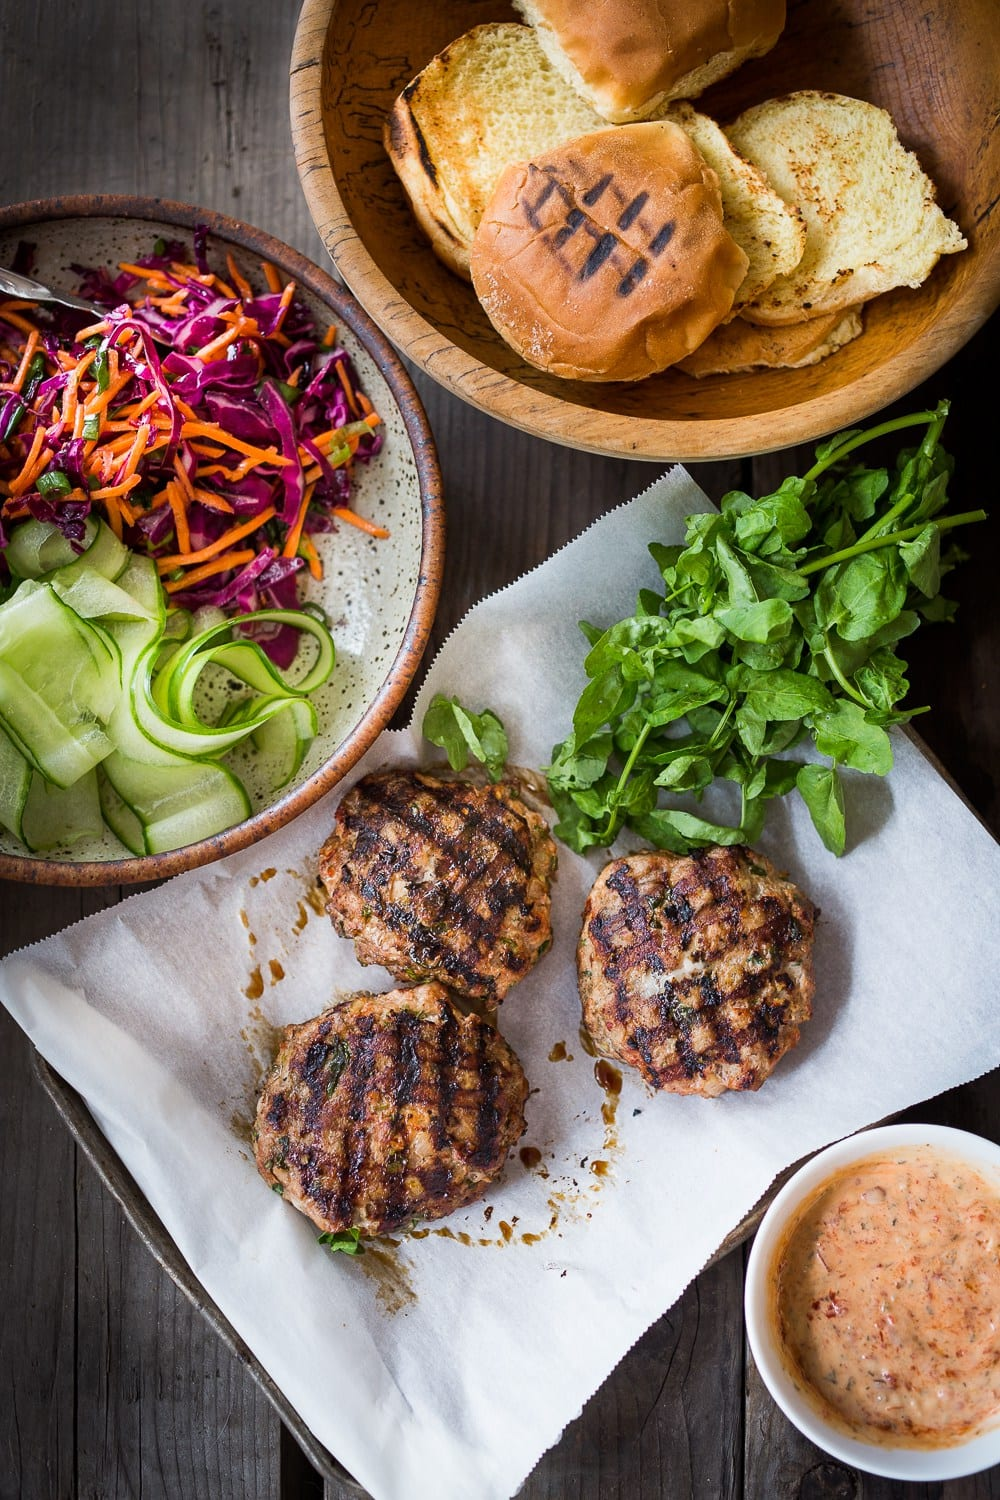 For an even lighter option, serve in butter lettuce wraps and go ...